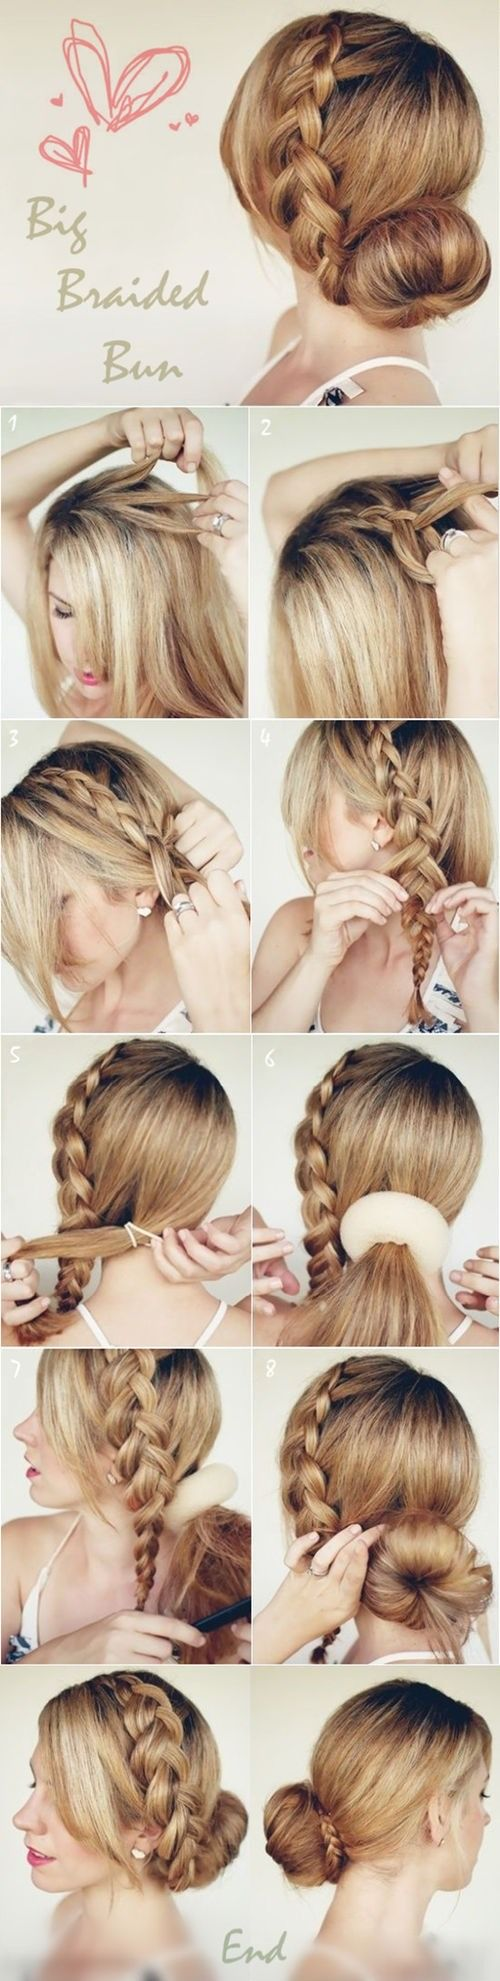 best hair images on pinterest hairstyles hair and braids